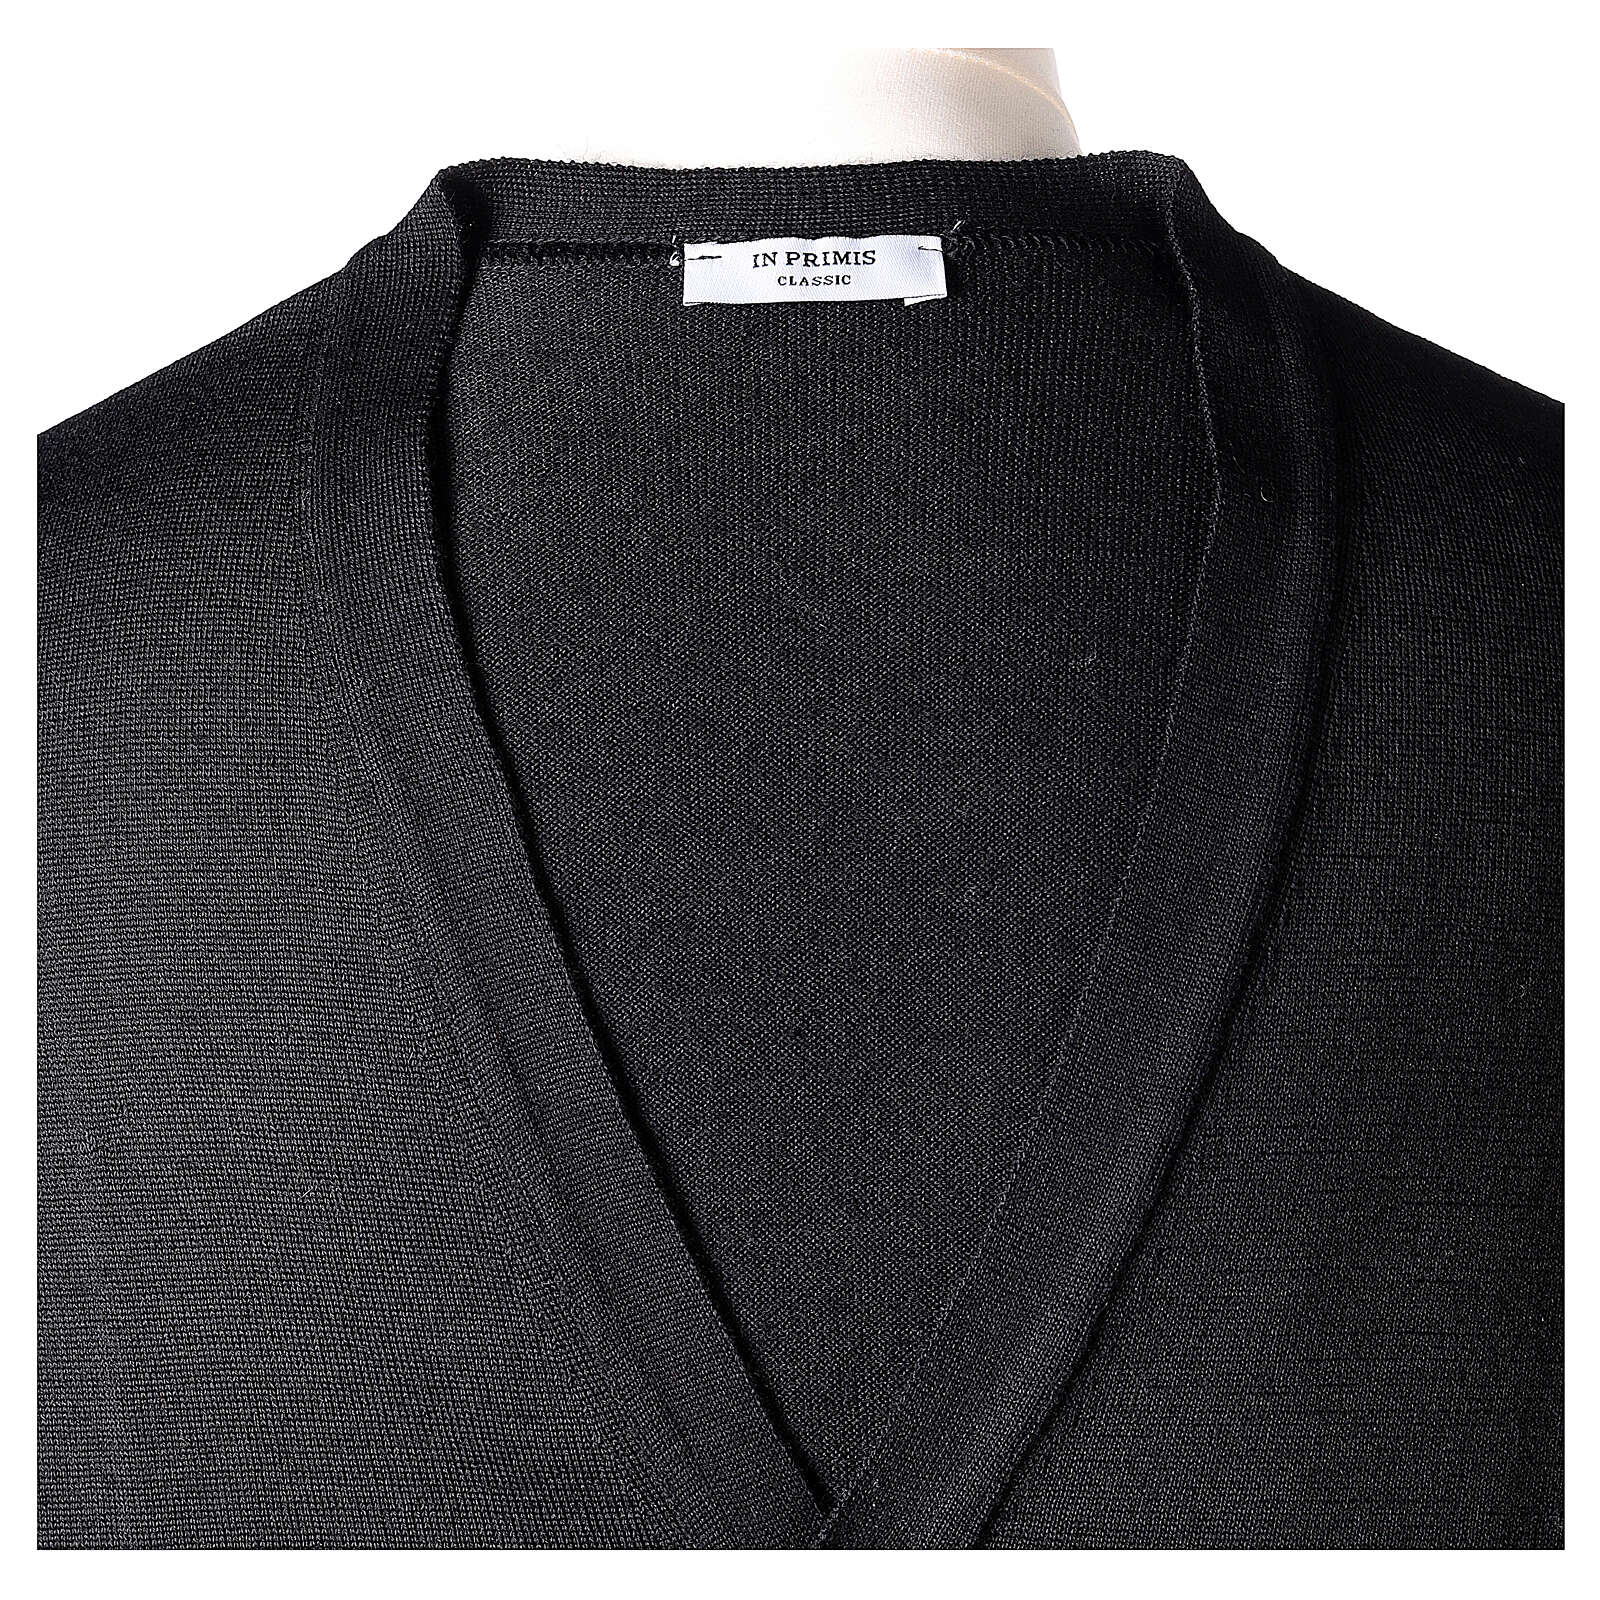 Clergy button-front cardigan black plain knit 50% acrylic 50% merino wool In Primis 4